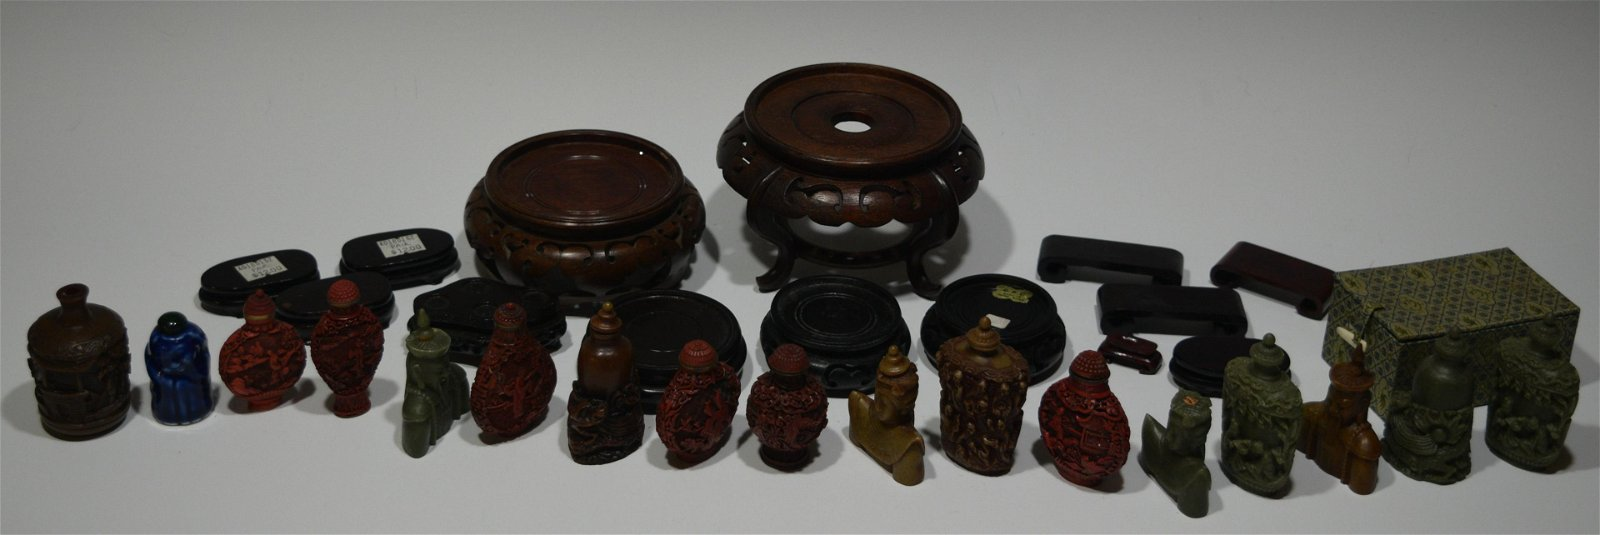 (17) Chinese Snuff Bottles and (12) Wood Stands